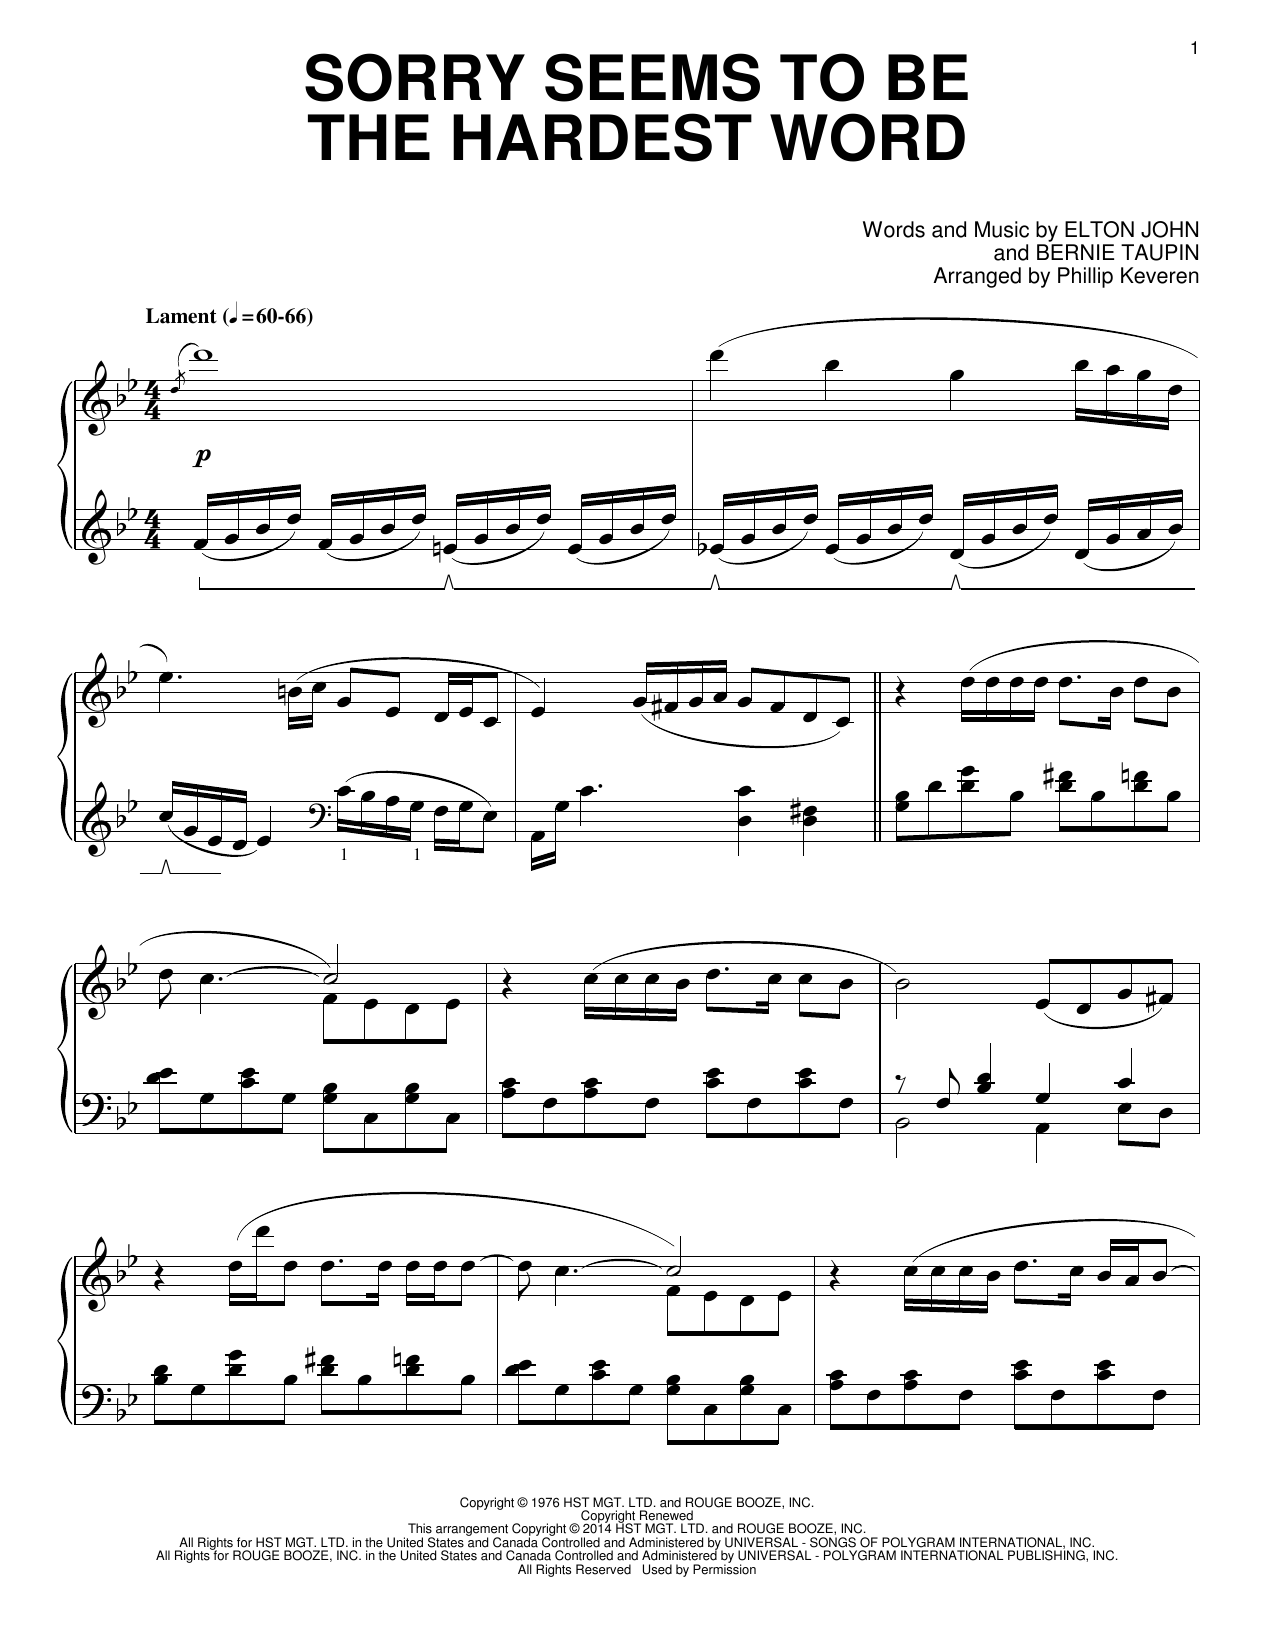 Elton John Sorry Seems To Be The Hardest Word [Classical version] (arr. Phillip Keveren) sheet music notes and chords. Download Printable PDF.